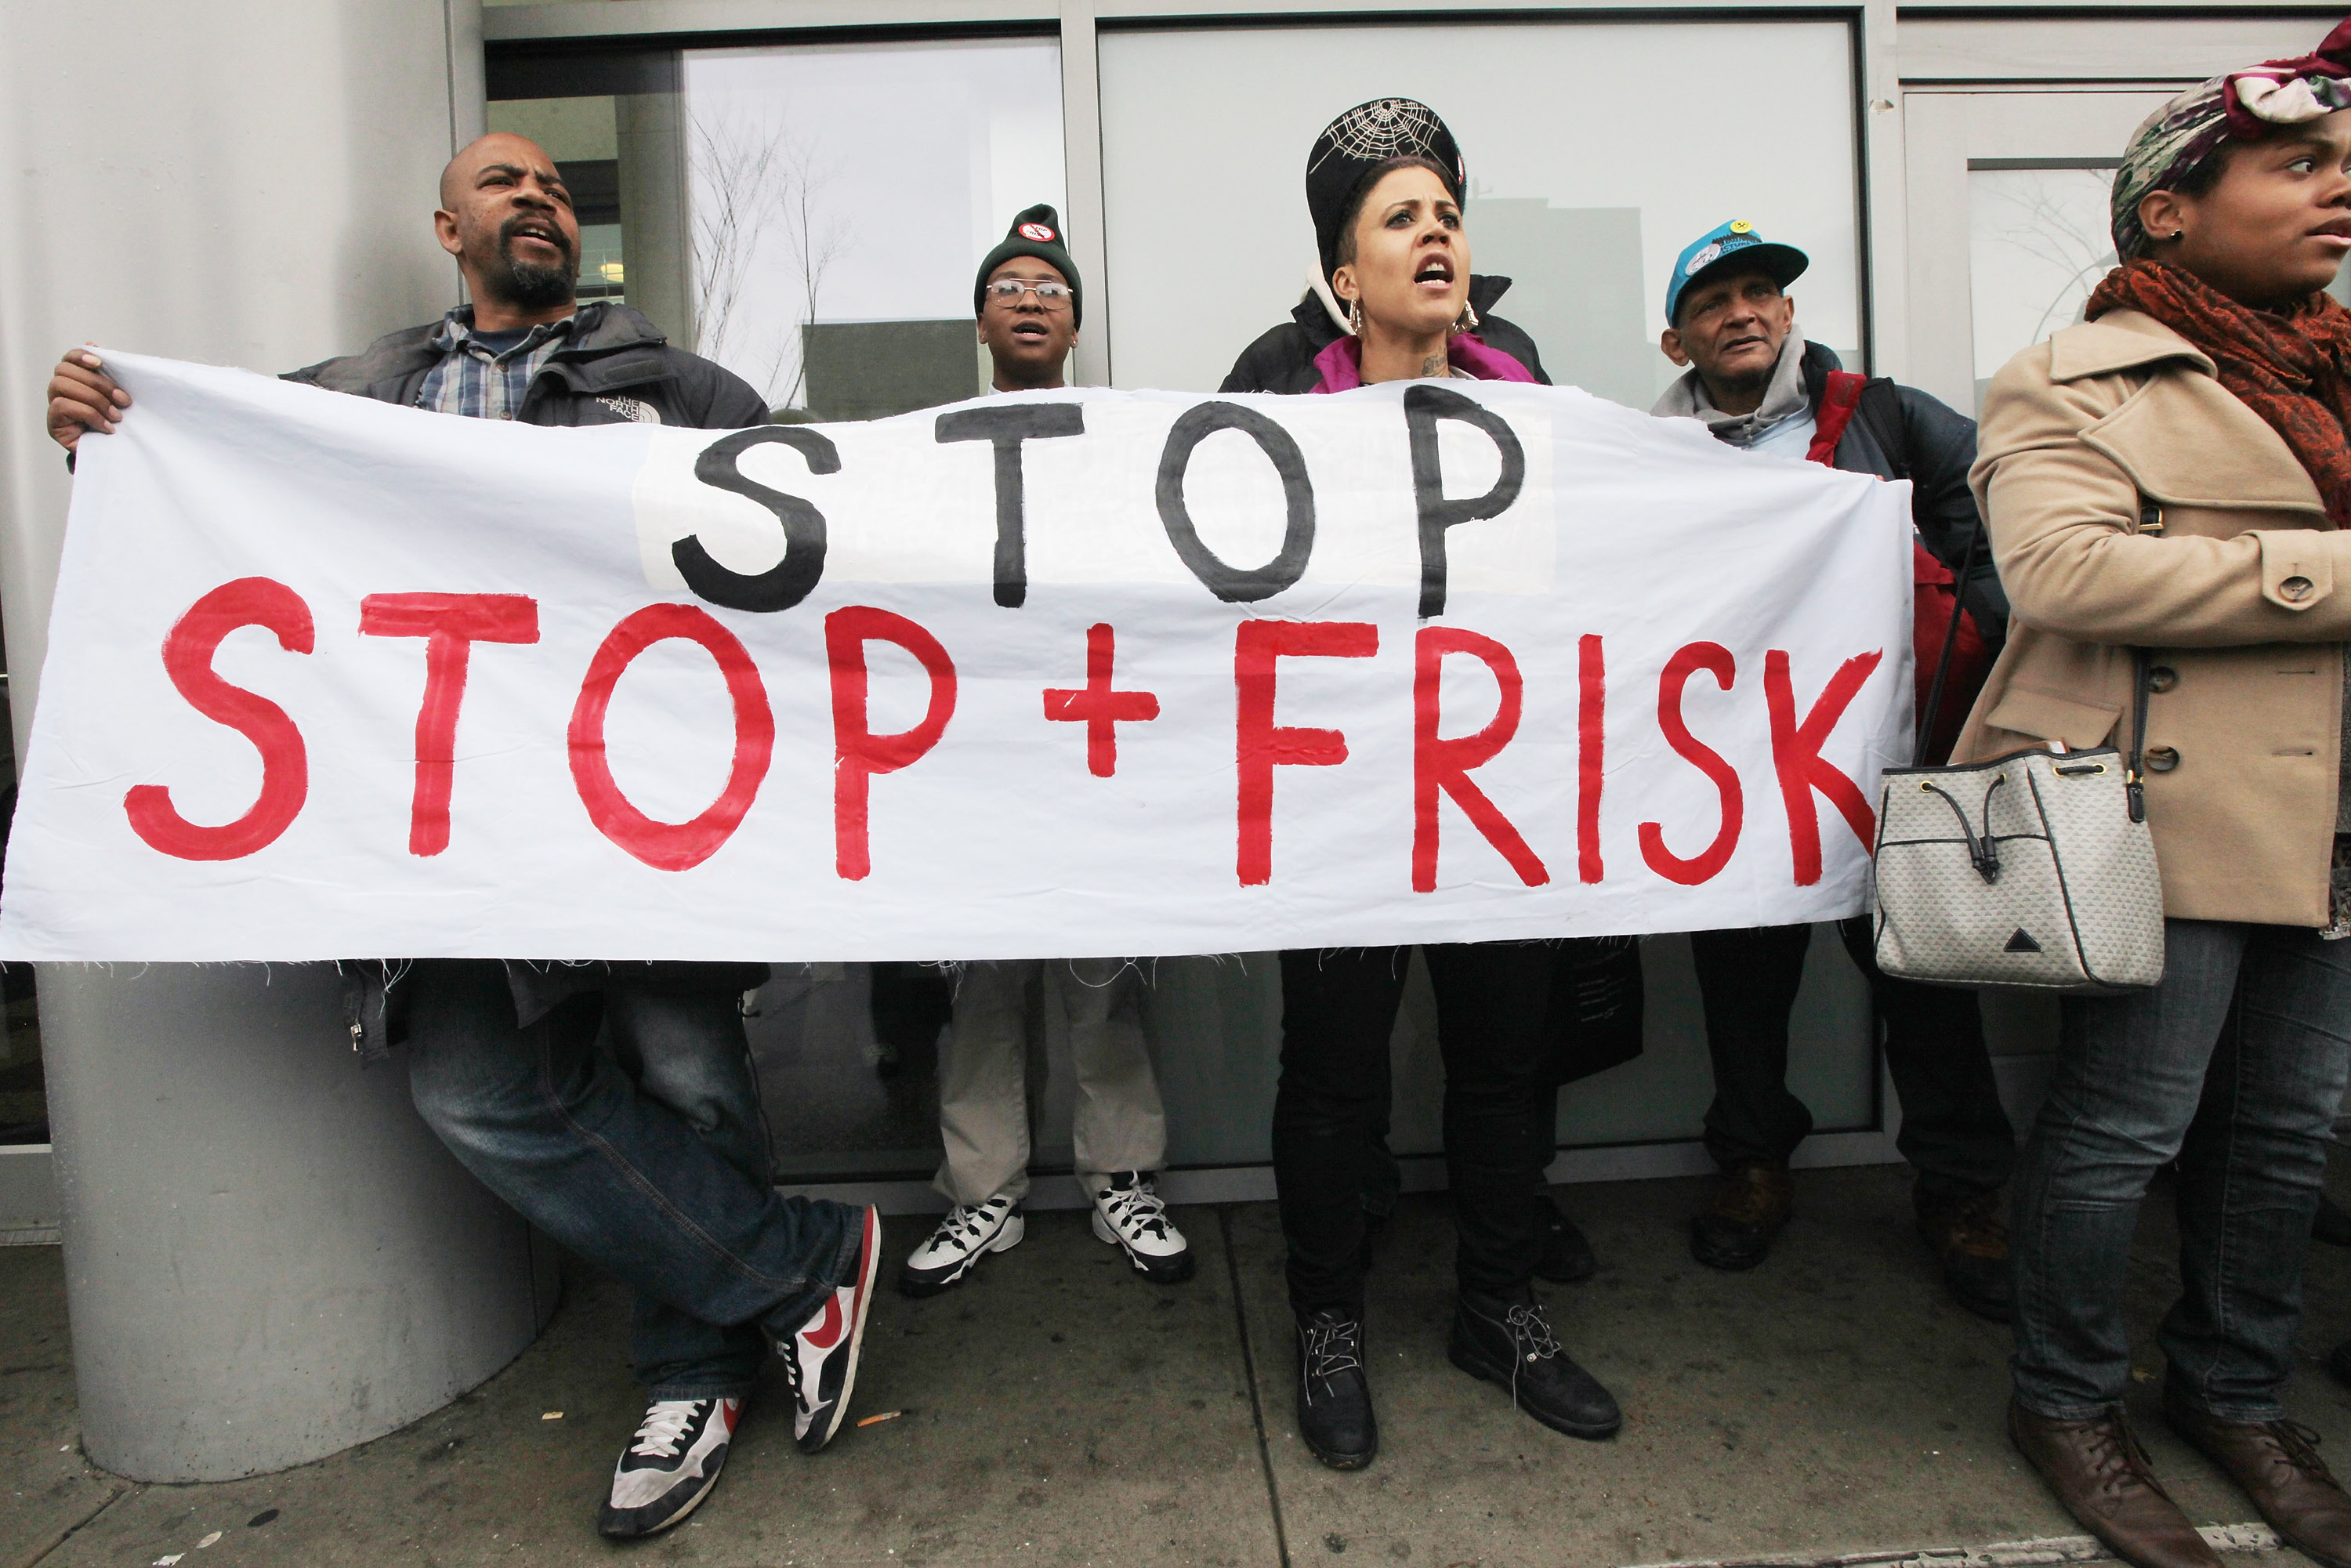 Take it from an activist who was there: Stop and frisk cost New Yorkers their lives